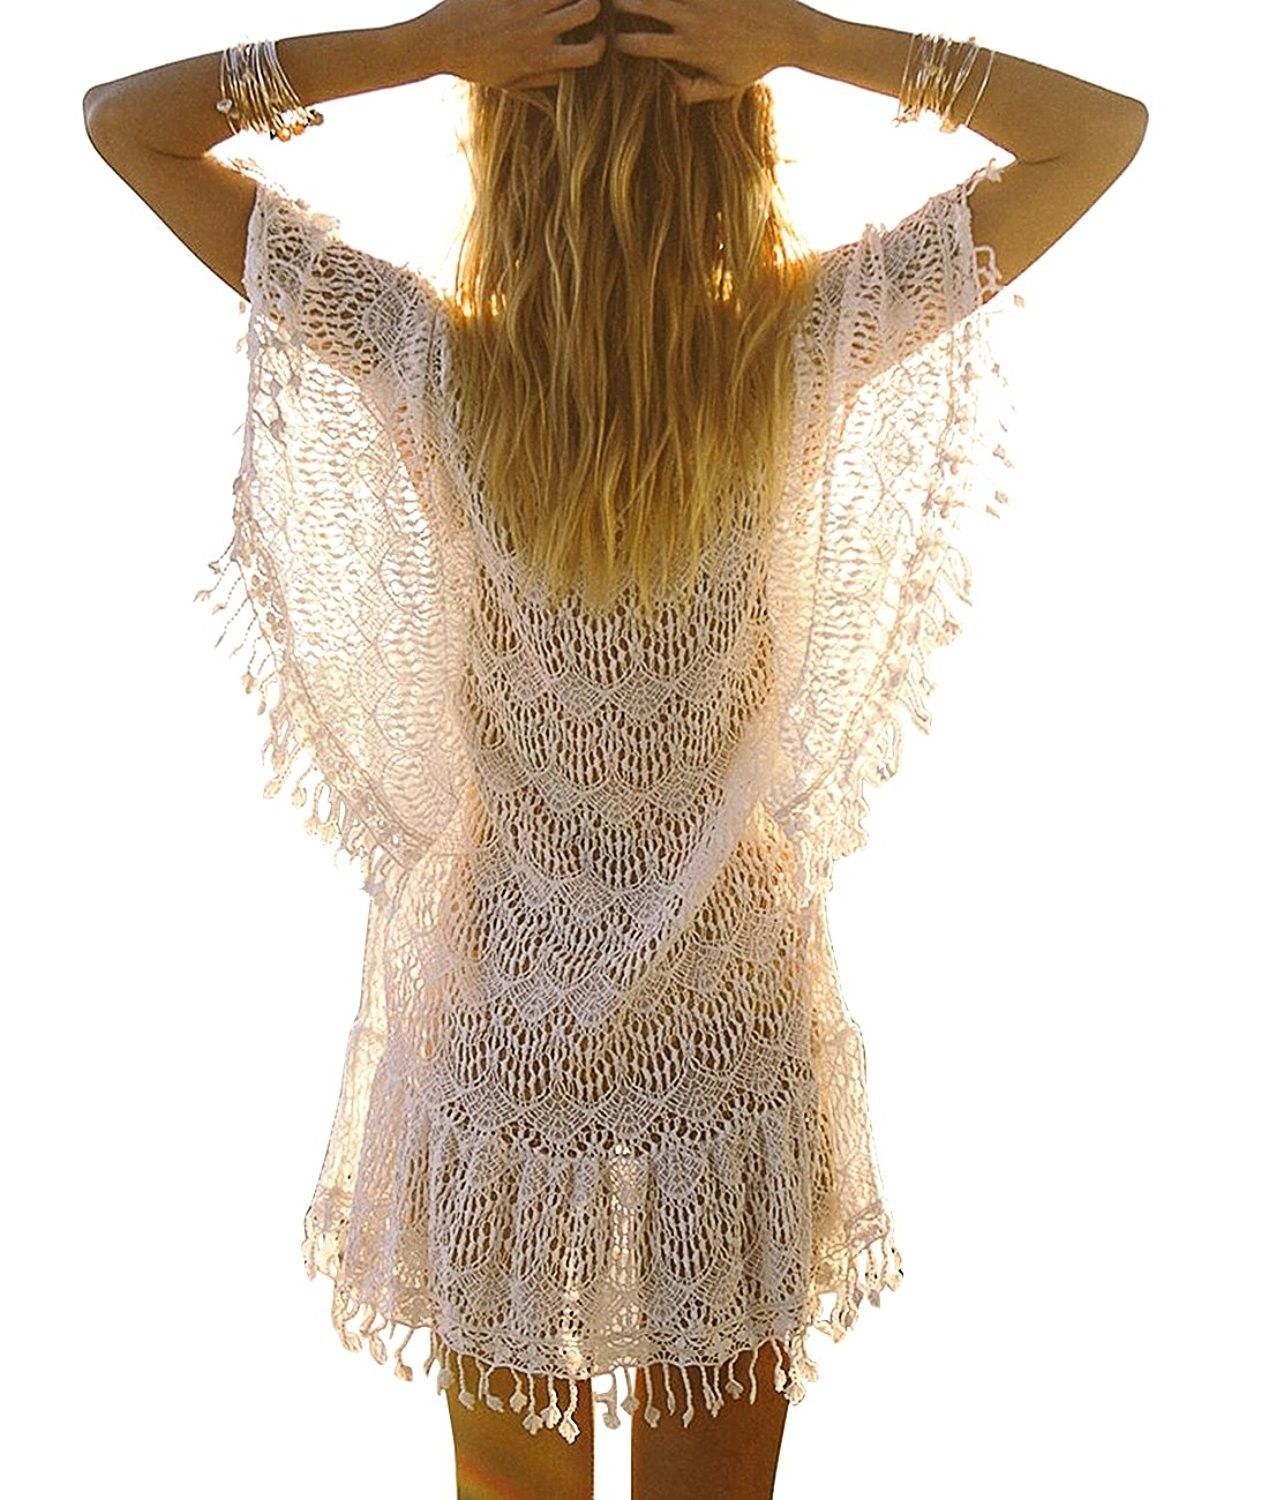 7295e818f0eda Women's Clothing, Swimsuits & Cover Ups, Cover-Ups, Women's Lace Crochet  Bikini